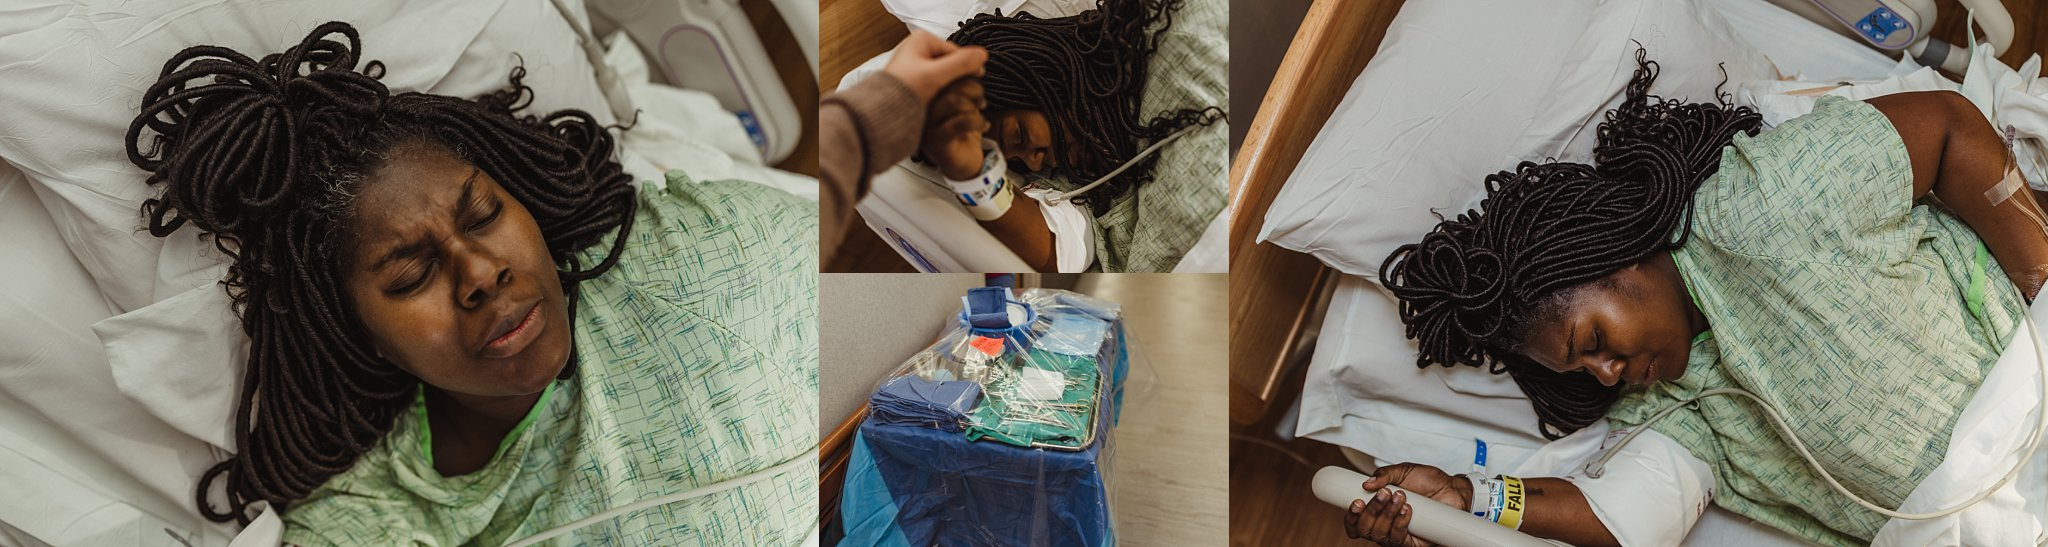 Mother labors through transition, about to welcome her newborn baby boy into the world in Peoria IL.